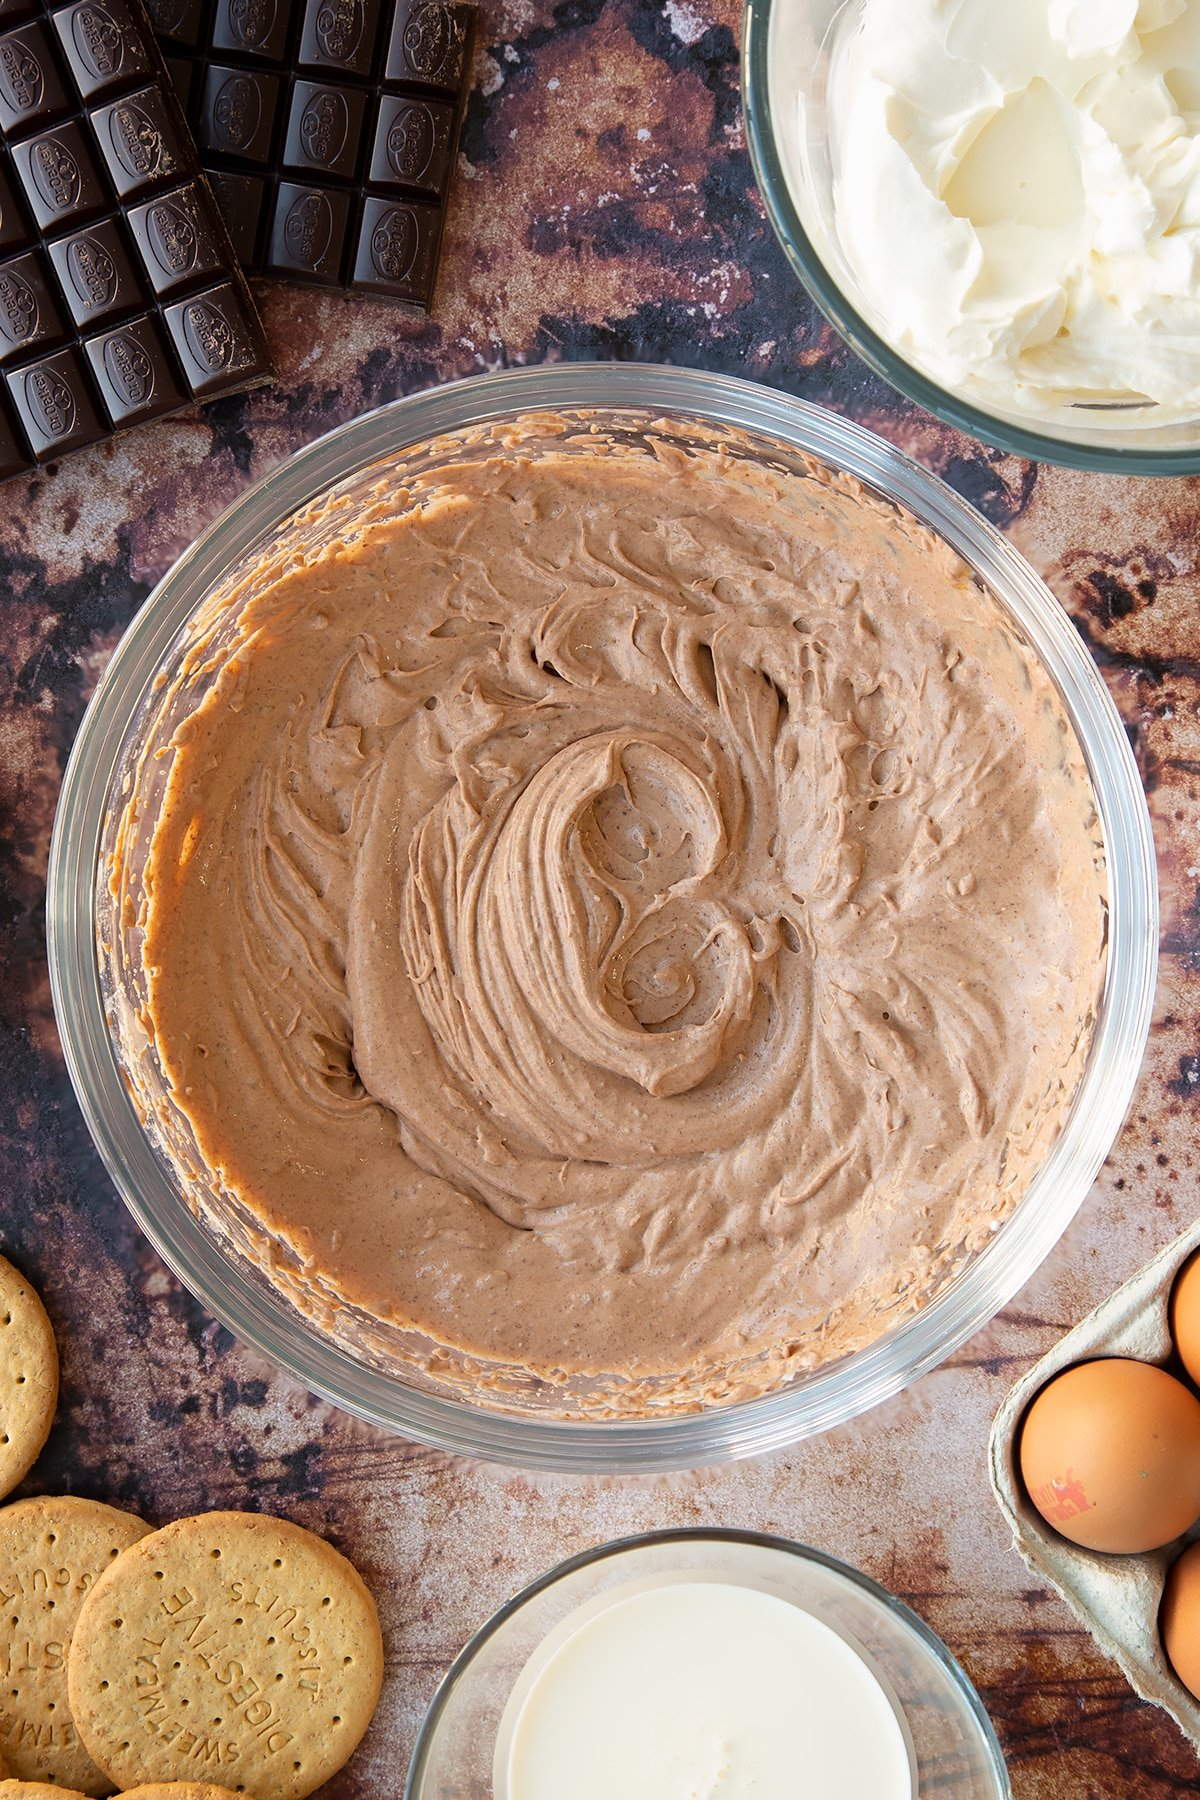 Chocolate cheesecake mix in a glass bowl. Ingredients to make chocolate cheesecake cupcakes surround the bowl.